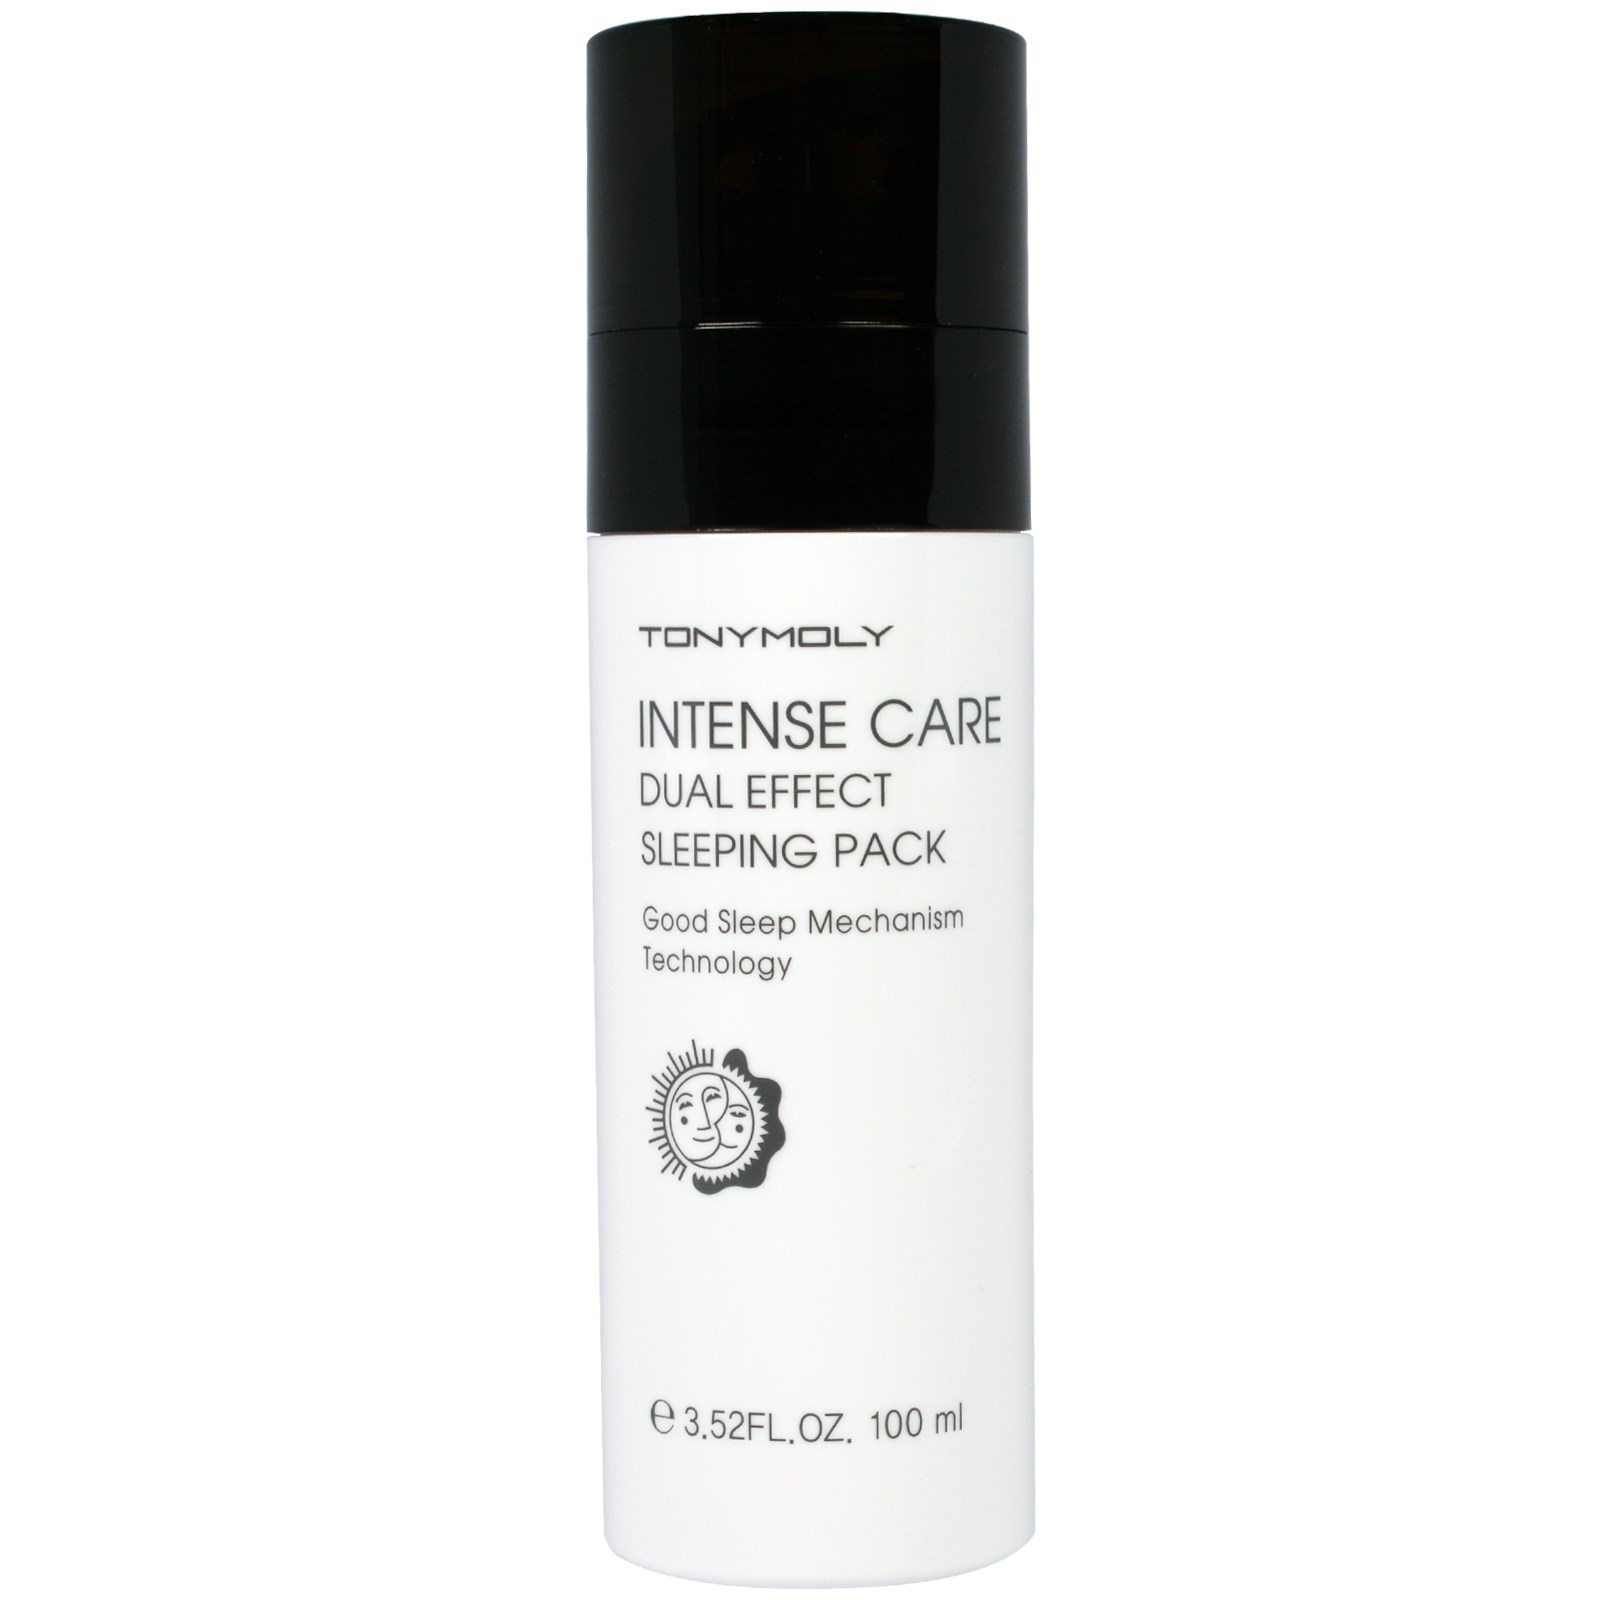 Tony Moly Intense care dual effect sleeping pack -  Для лица